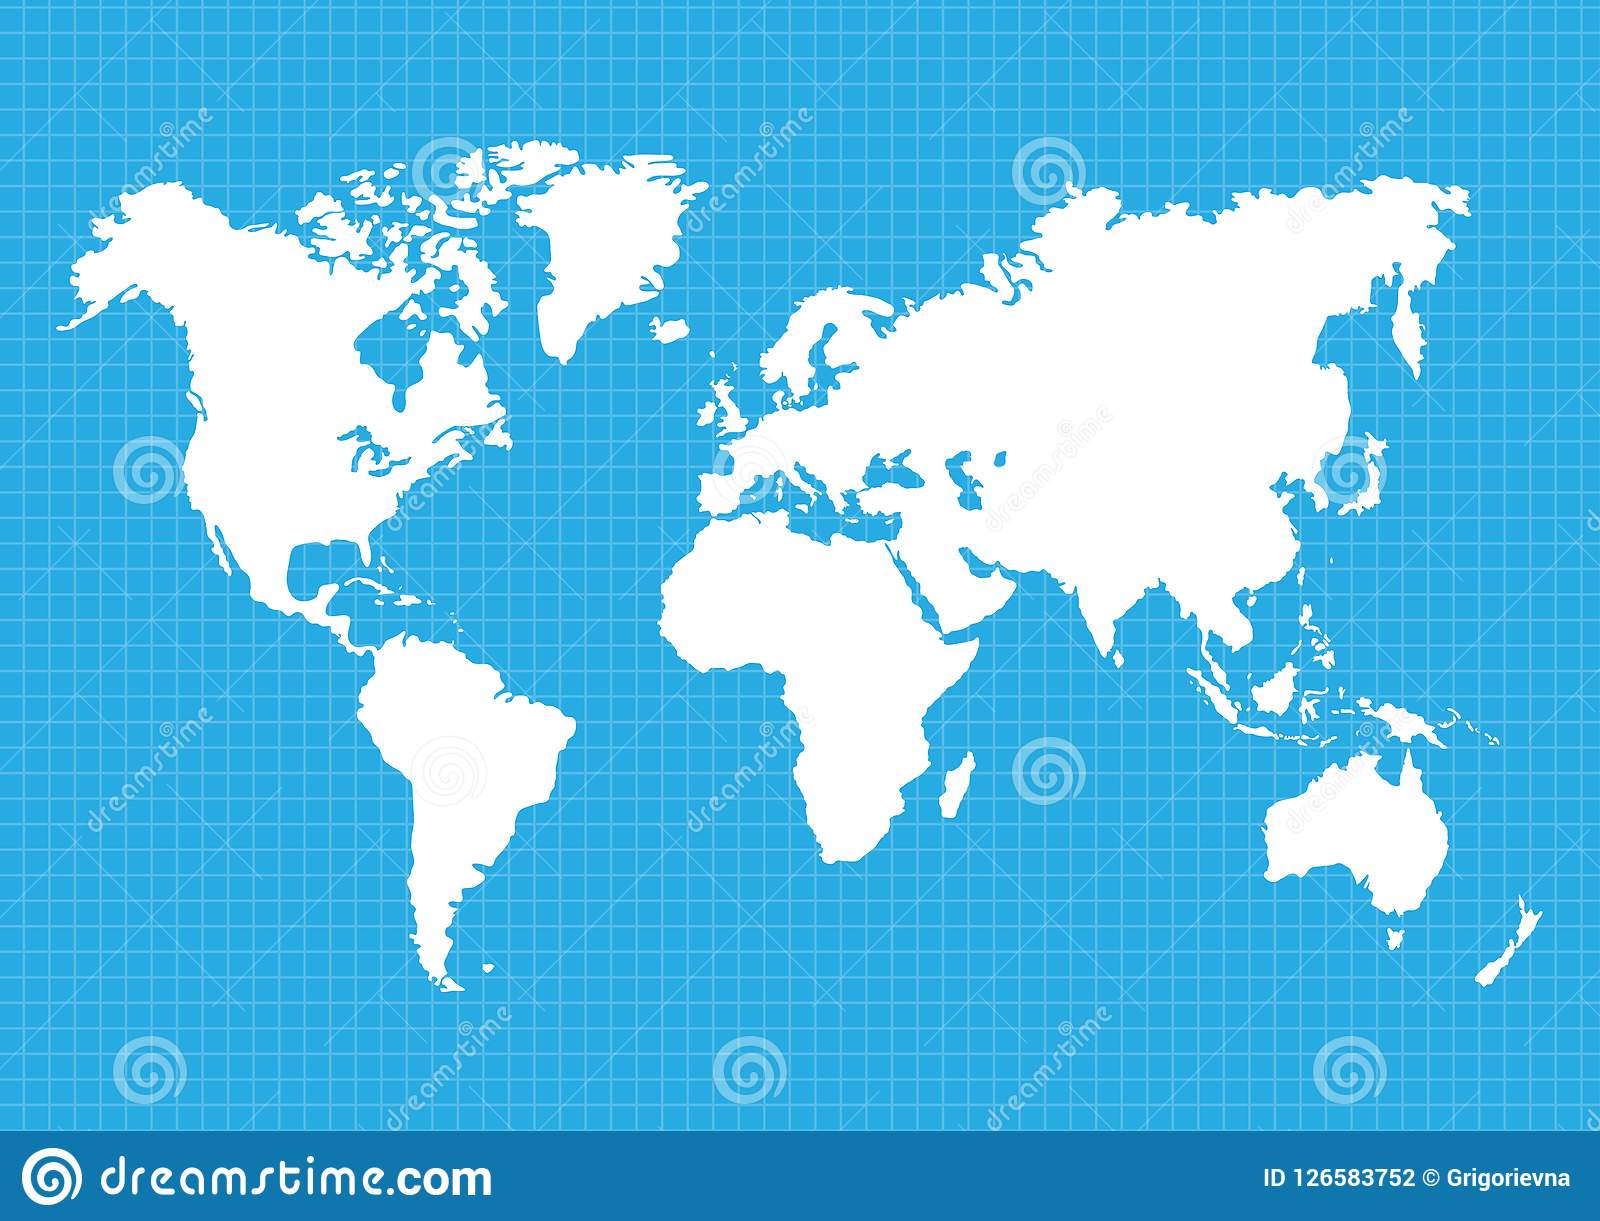 Maps Of The Earth`s. World Map, Continents, Vector Illustration ...